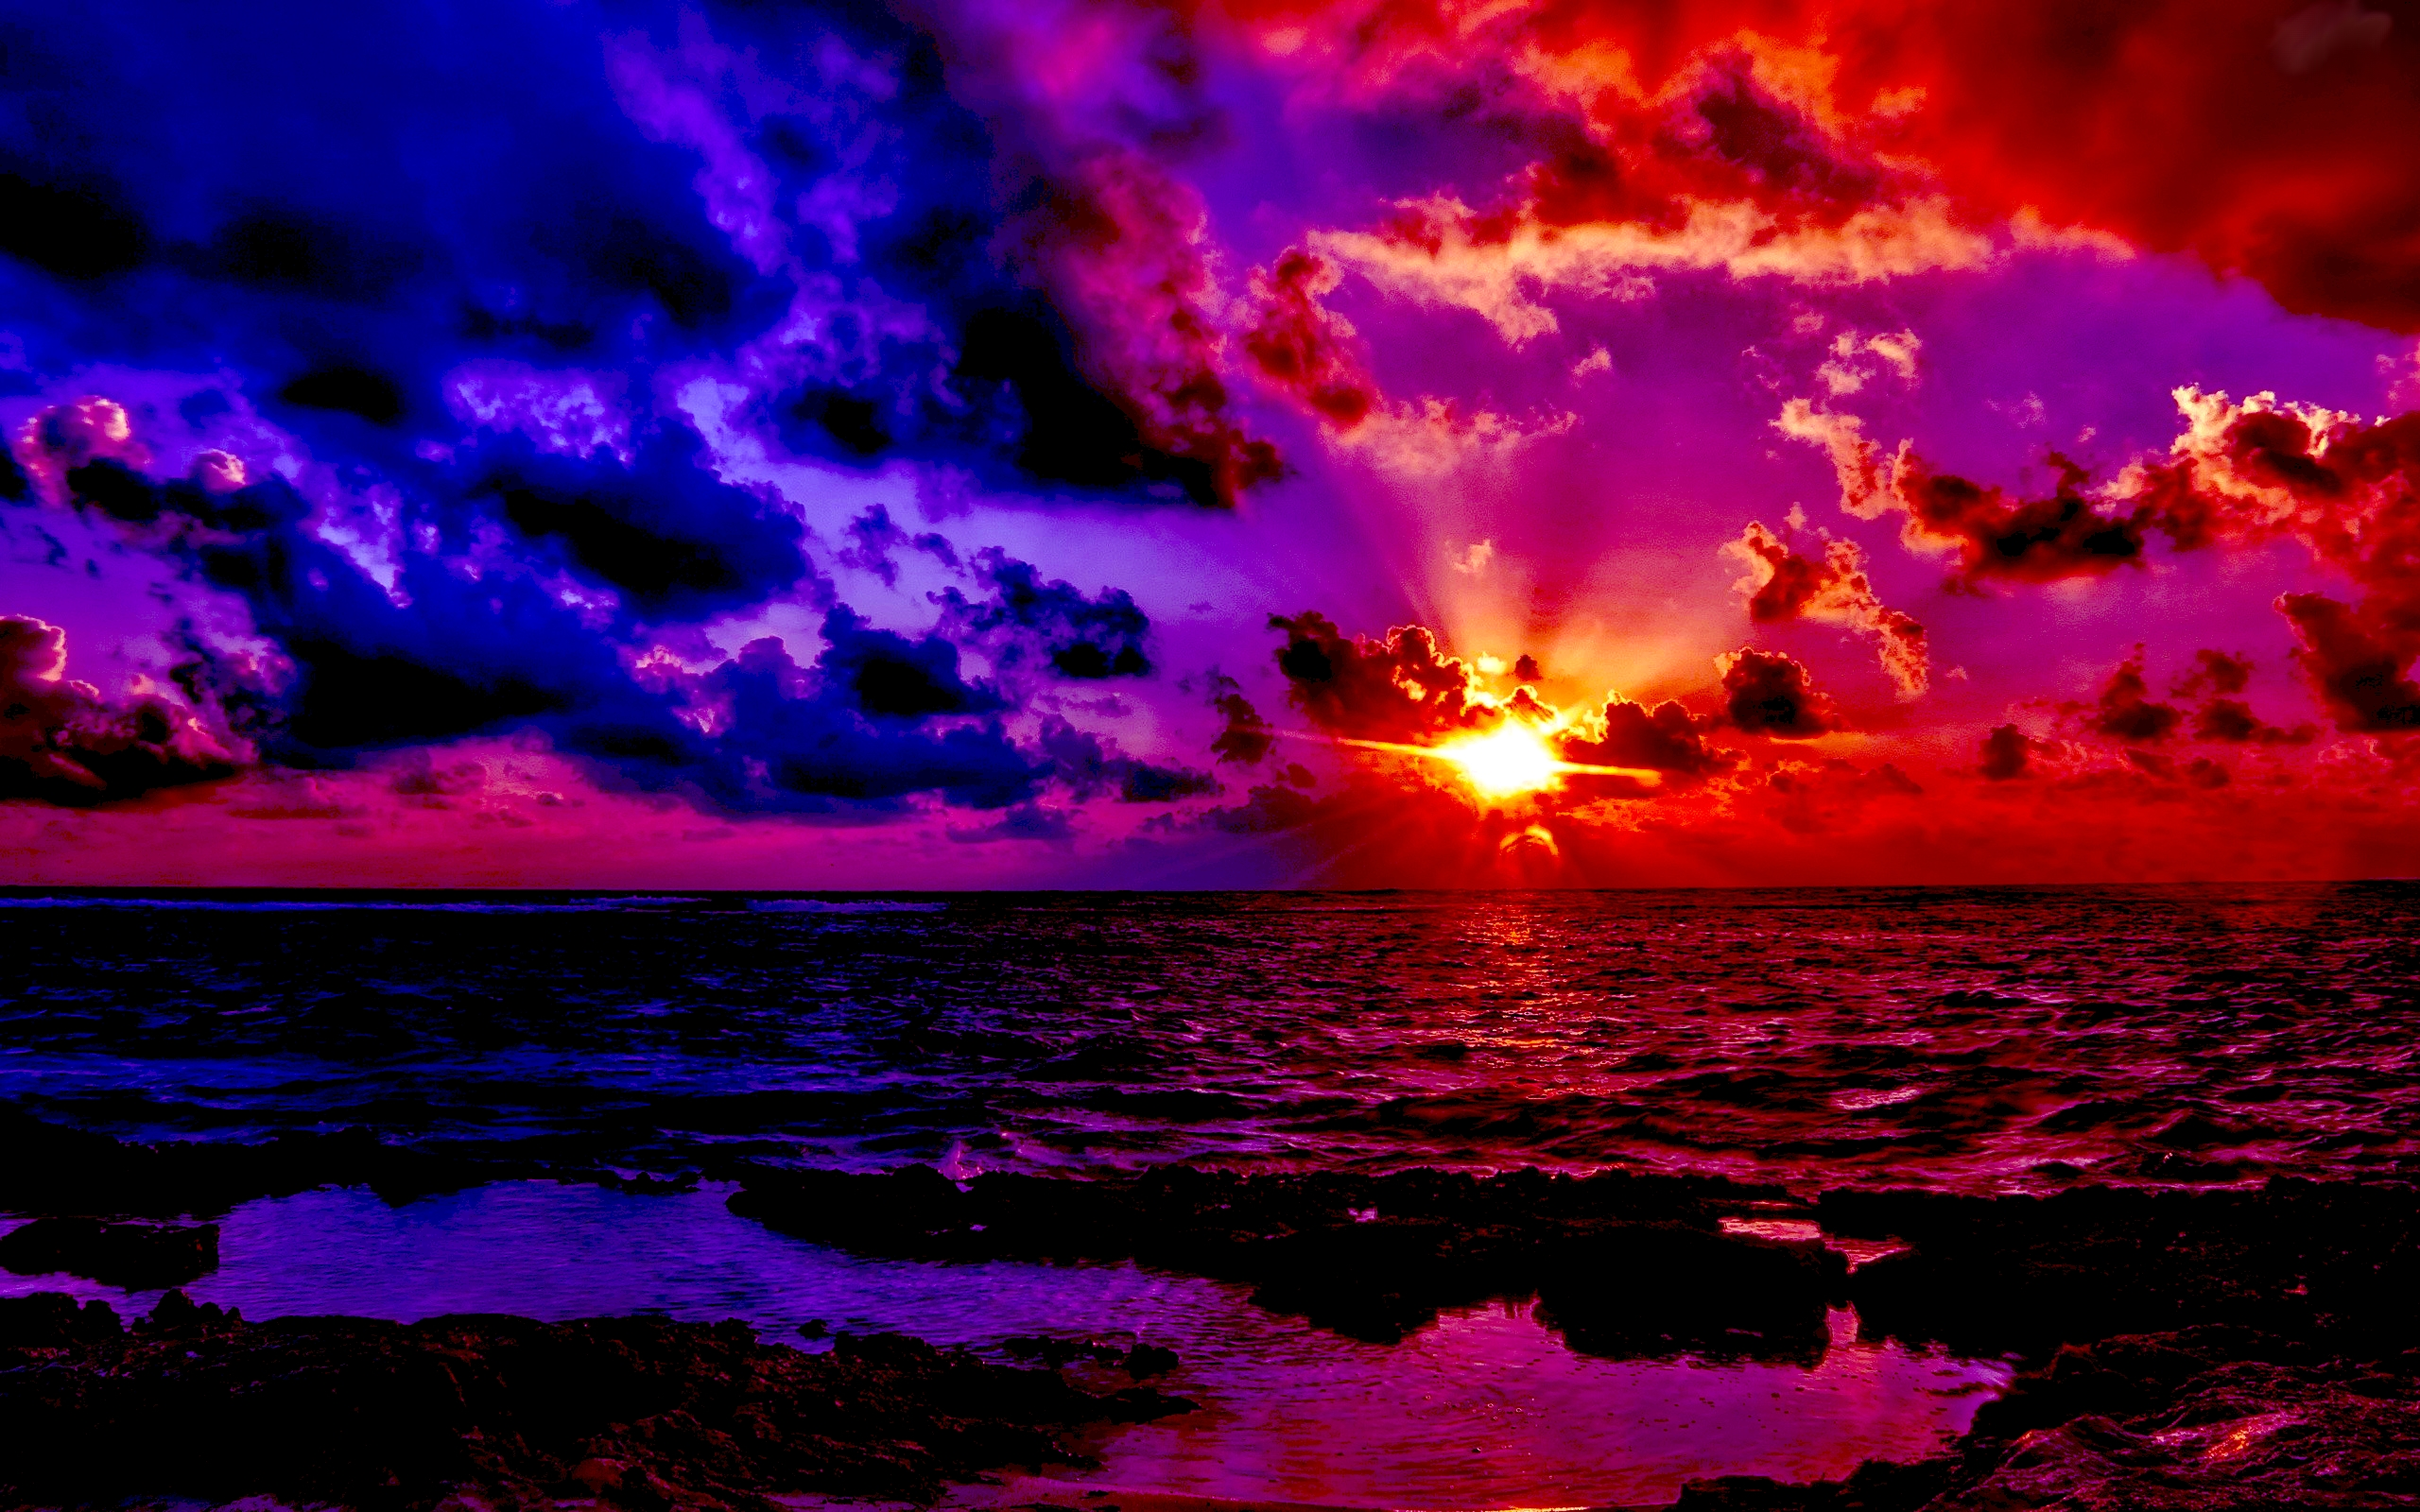 Fabulous Background wallpaper 2560x1600 33523 2560x1600